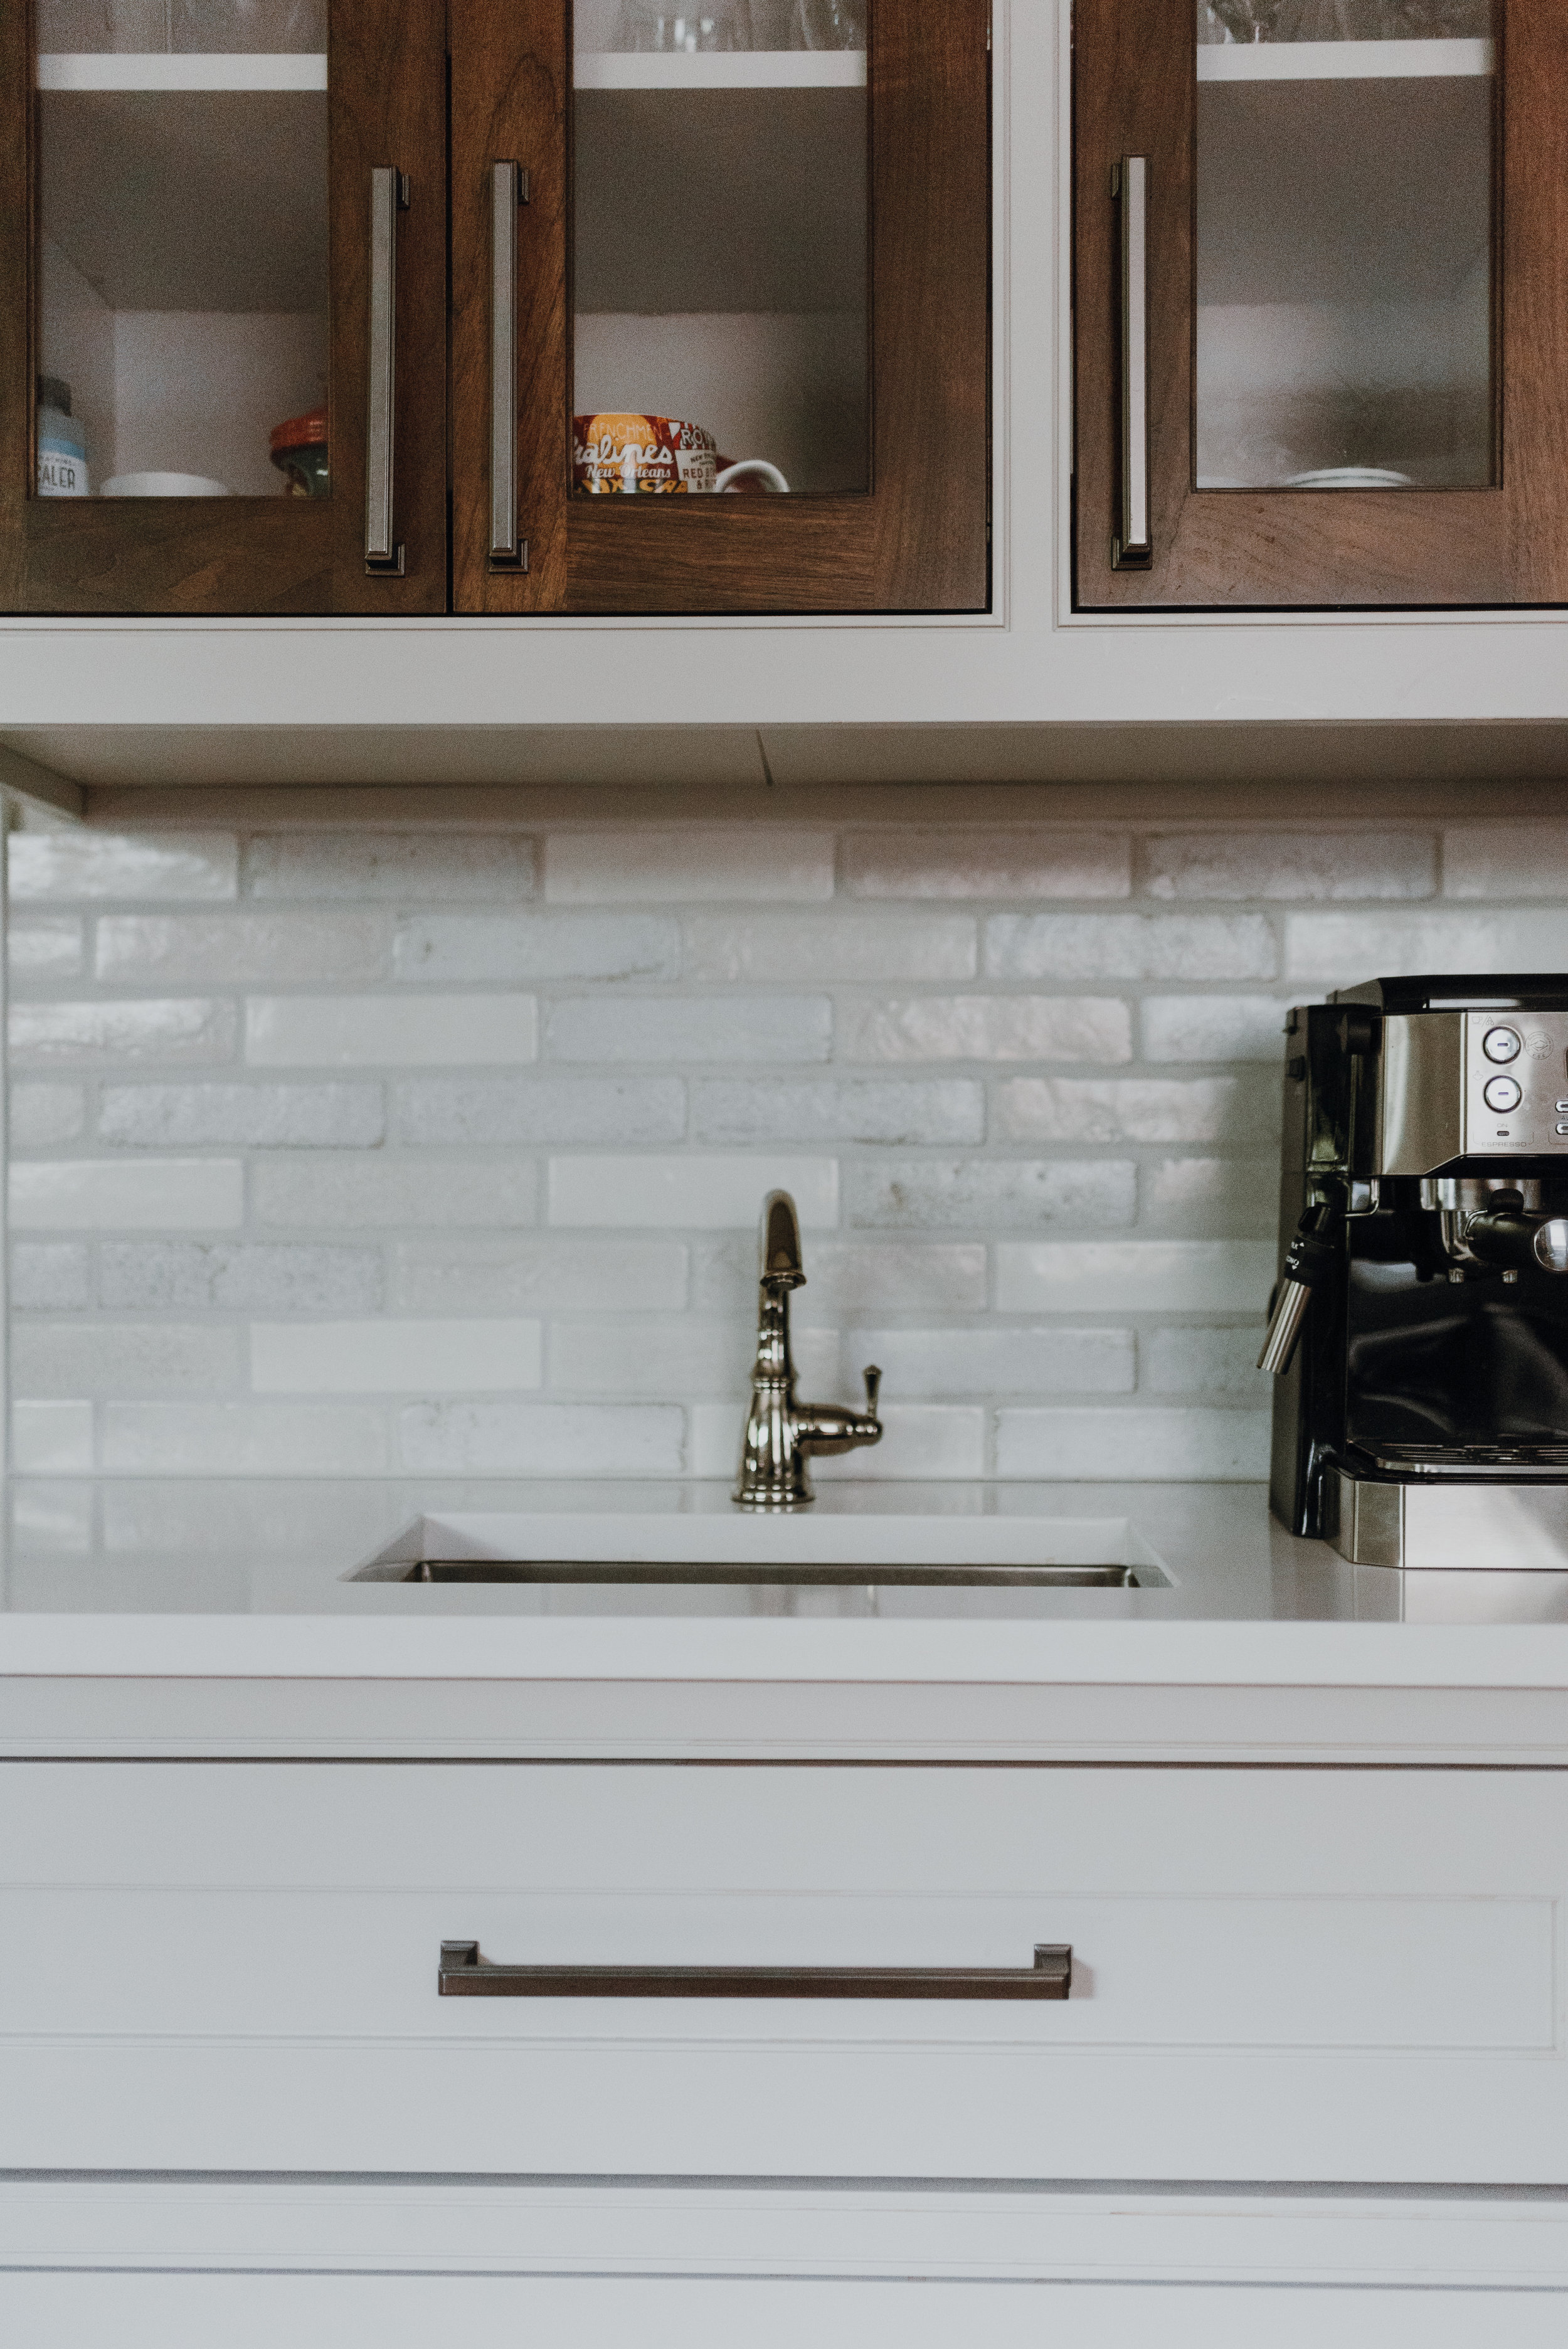 - The space was first structurally reworked lending way for a long run of white cabinets and service area for entertaining.